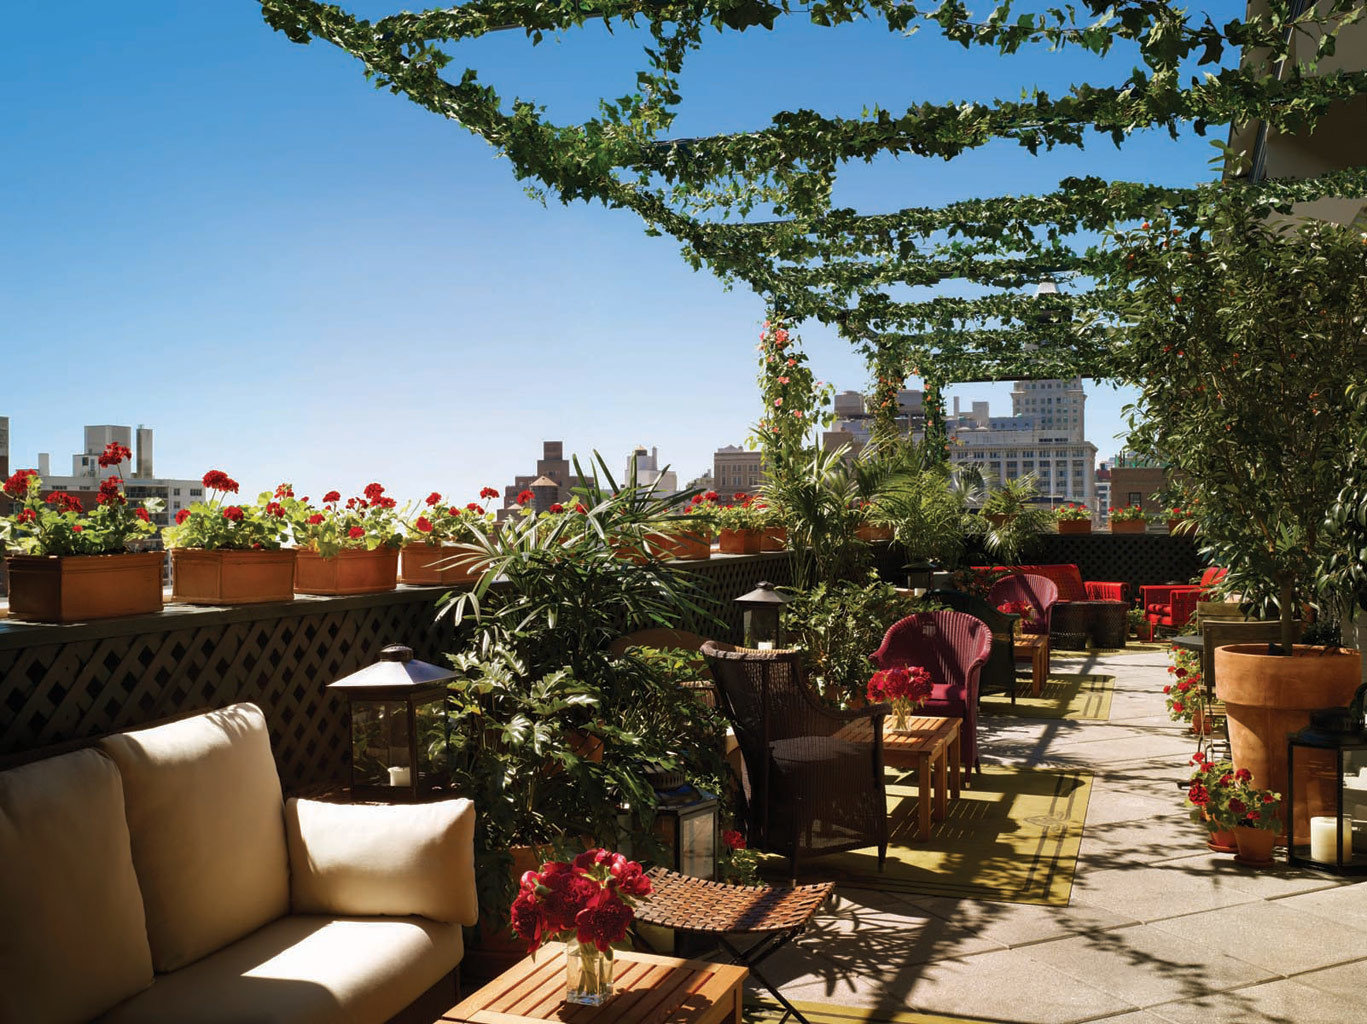 City Design Hotels Lounge NYC Outdoors Patio Rooftop Trip Ideas tree Living furniture flower backyard home estate yard outdoor structure Garden restaurant cottage Resort decorated area several